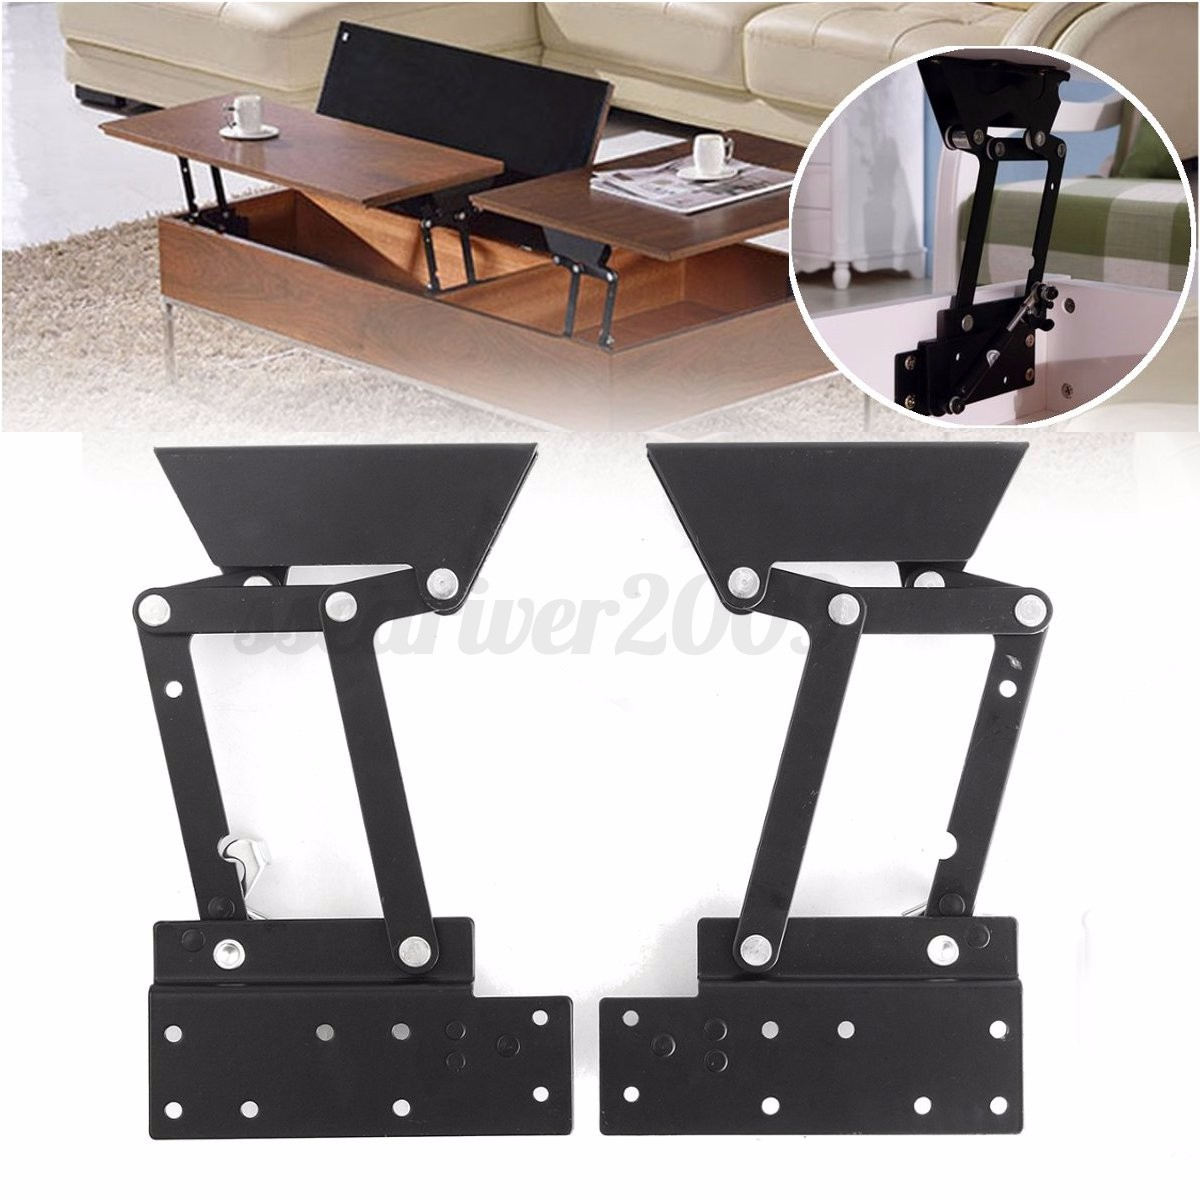 1pair Lift Up Top Coffee Table Sofa Bed Frame Furniture Mechanism Hinge Hardware Ebay